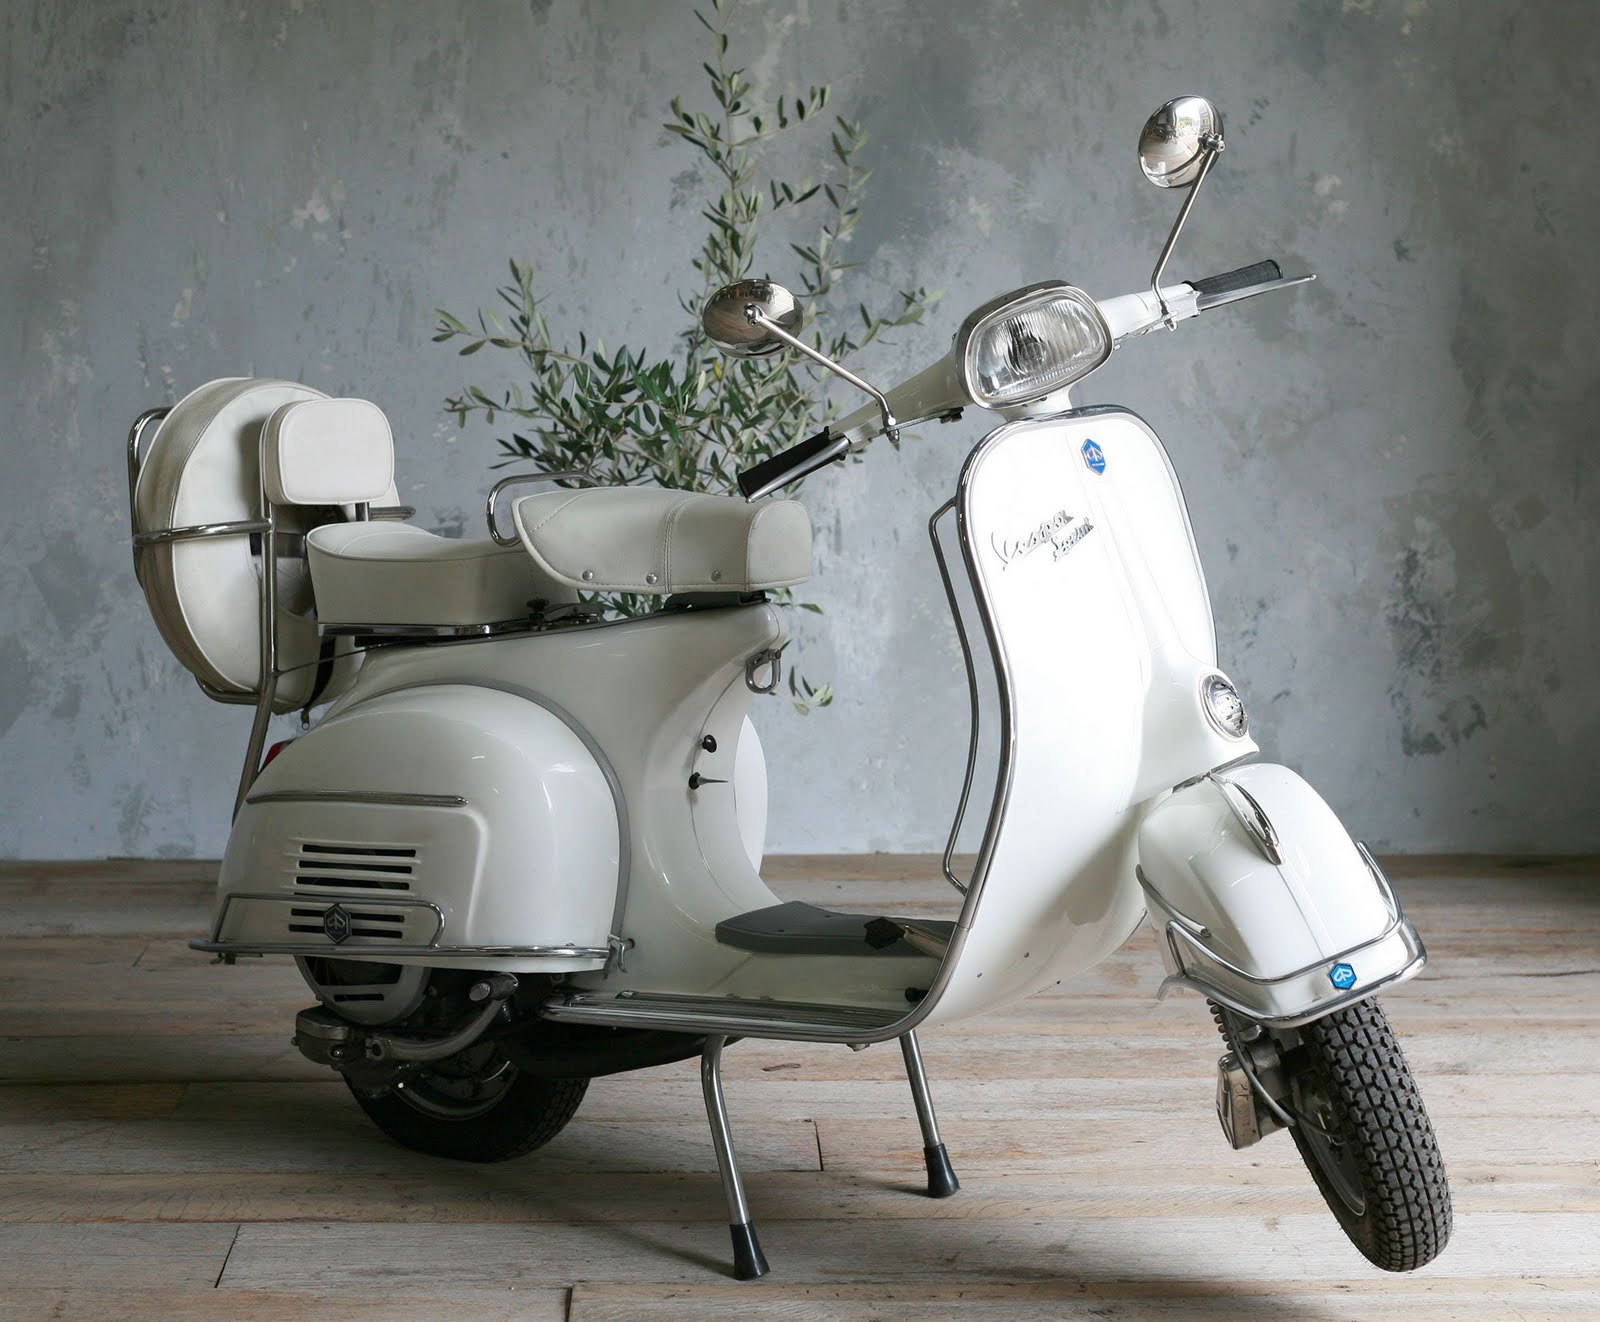 vespa photos vespatramp. Black Bedroom Furniture Sets. Home Design Ideas